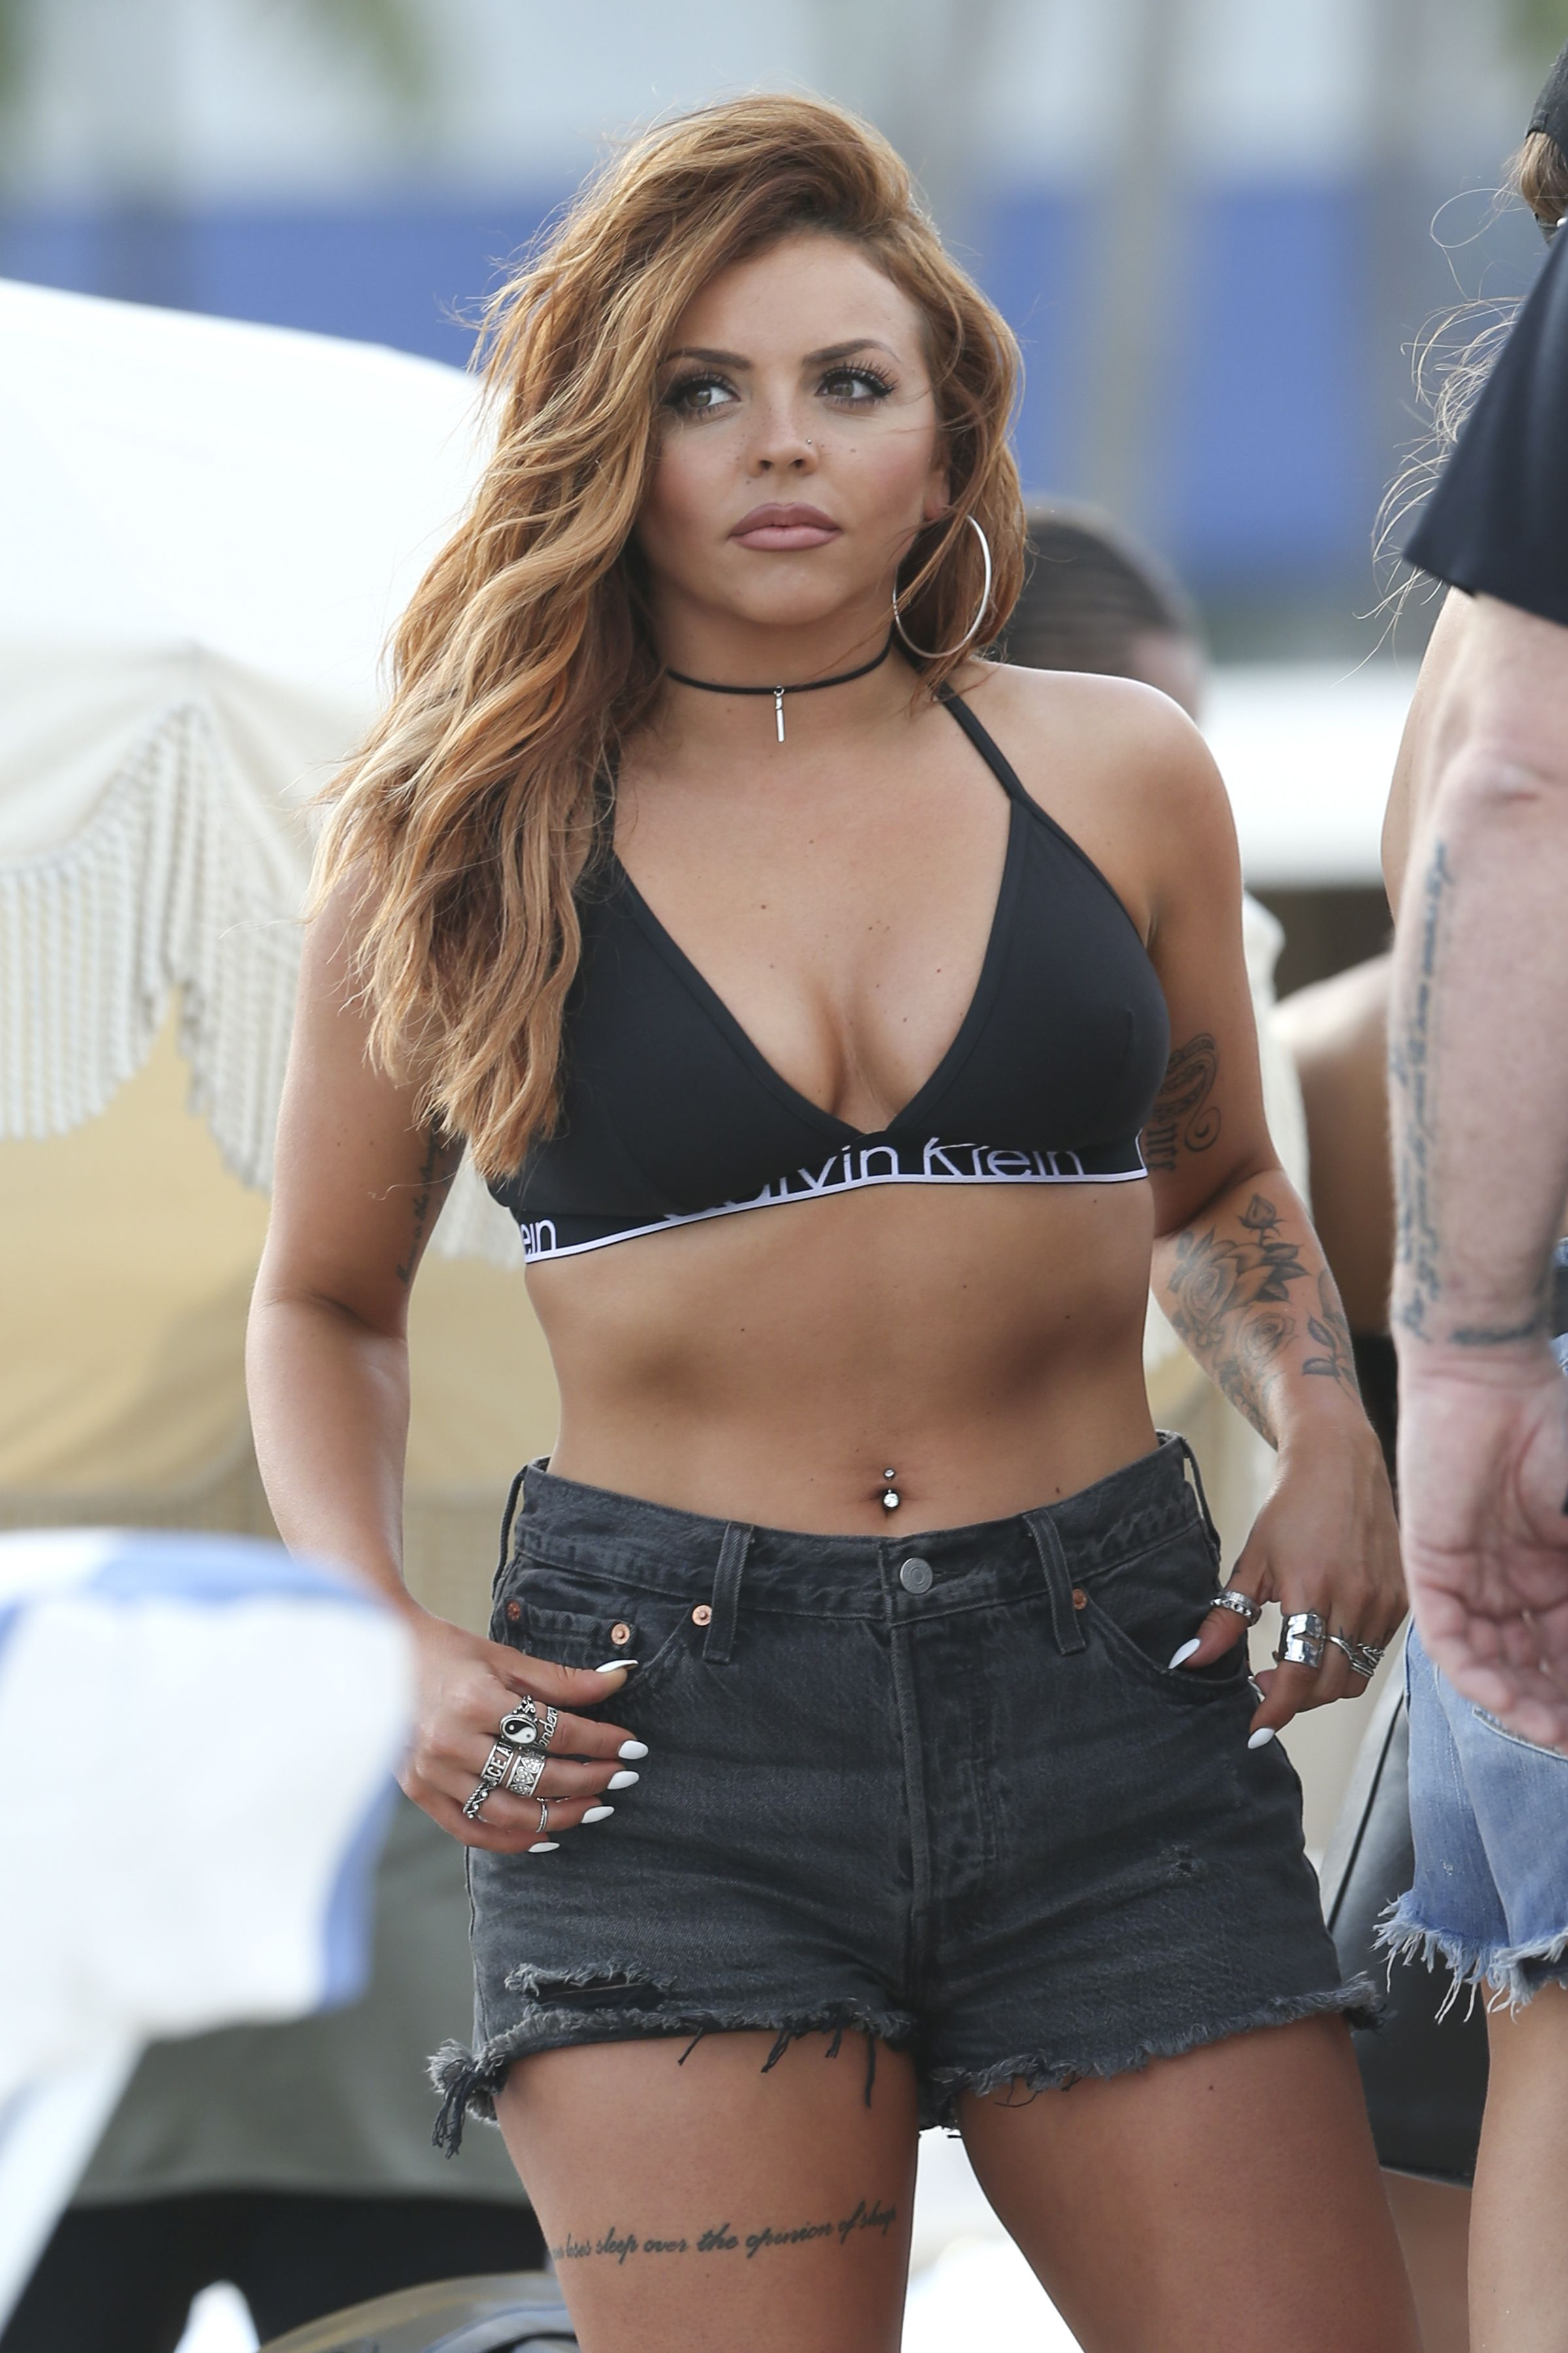 Cleavage Jesy Nelson naked (77 photos), Sexy, Hot, Feet, cleavage 2020